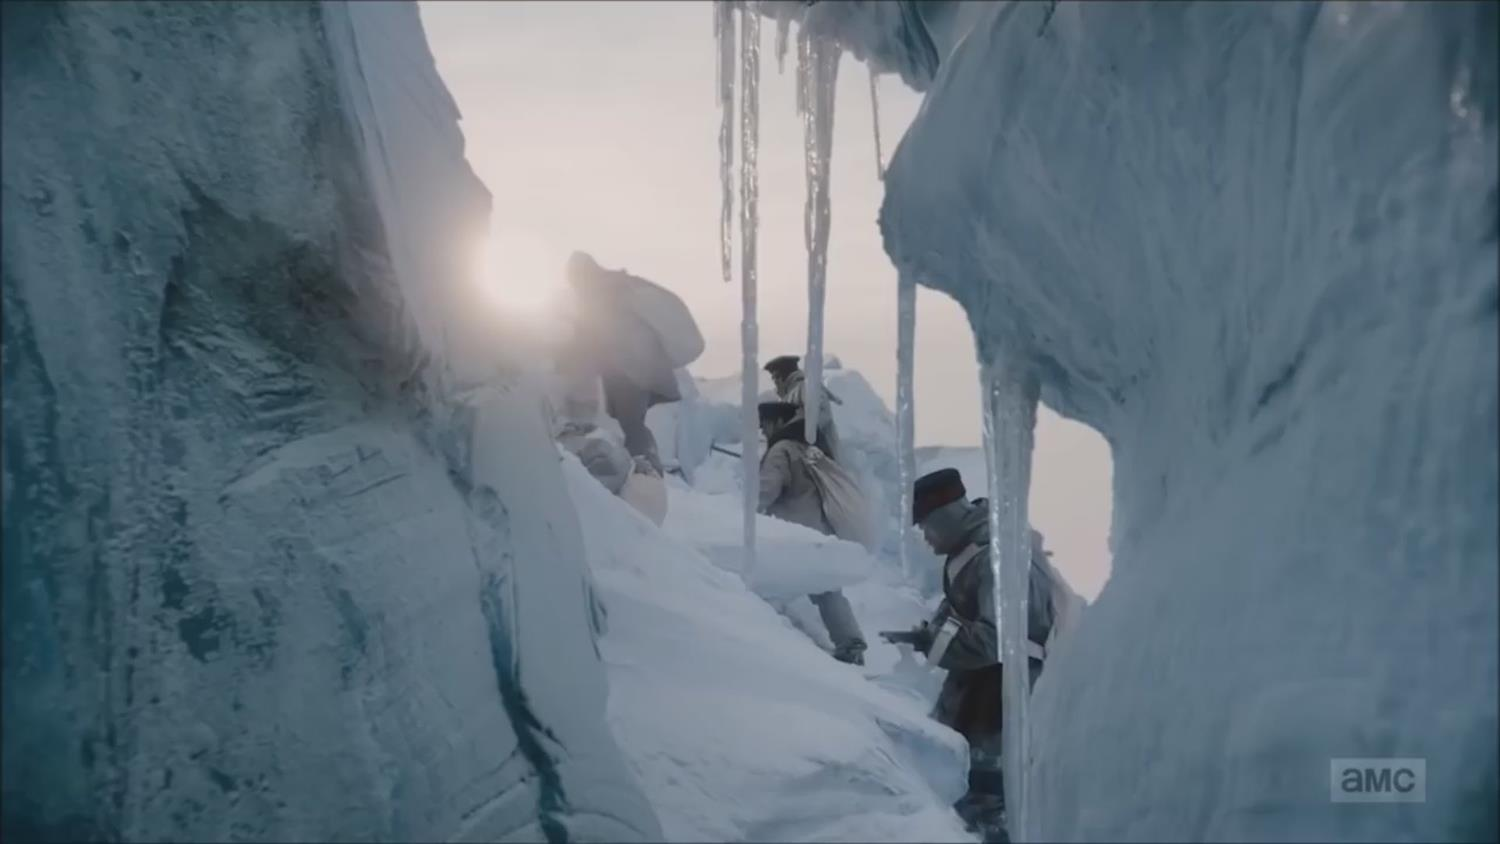 The Terror: A Horror Show Based on a True Story